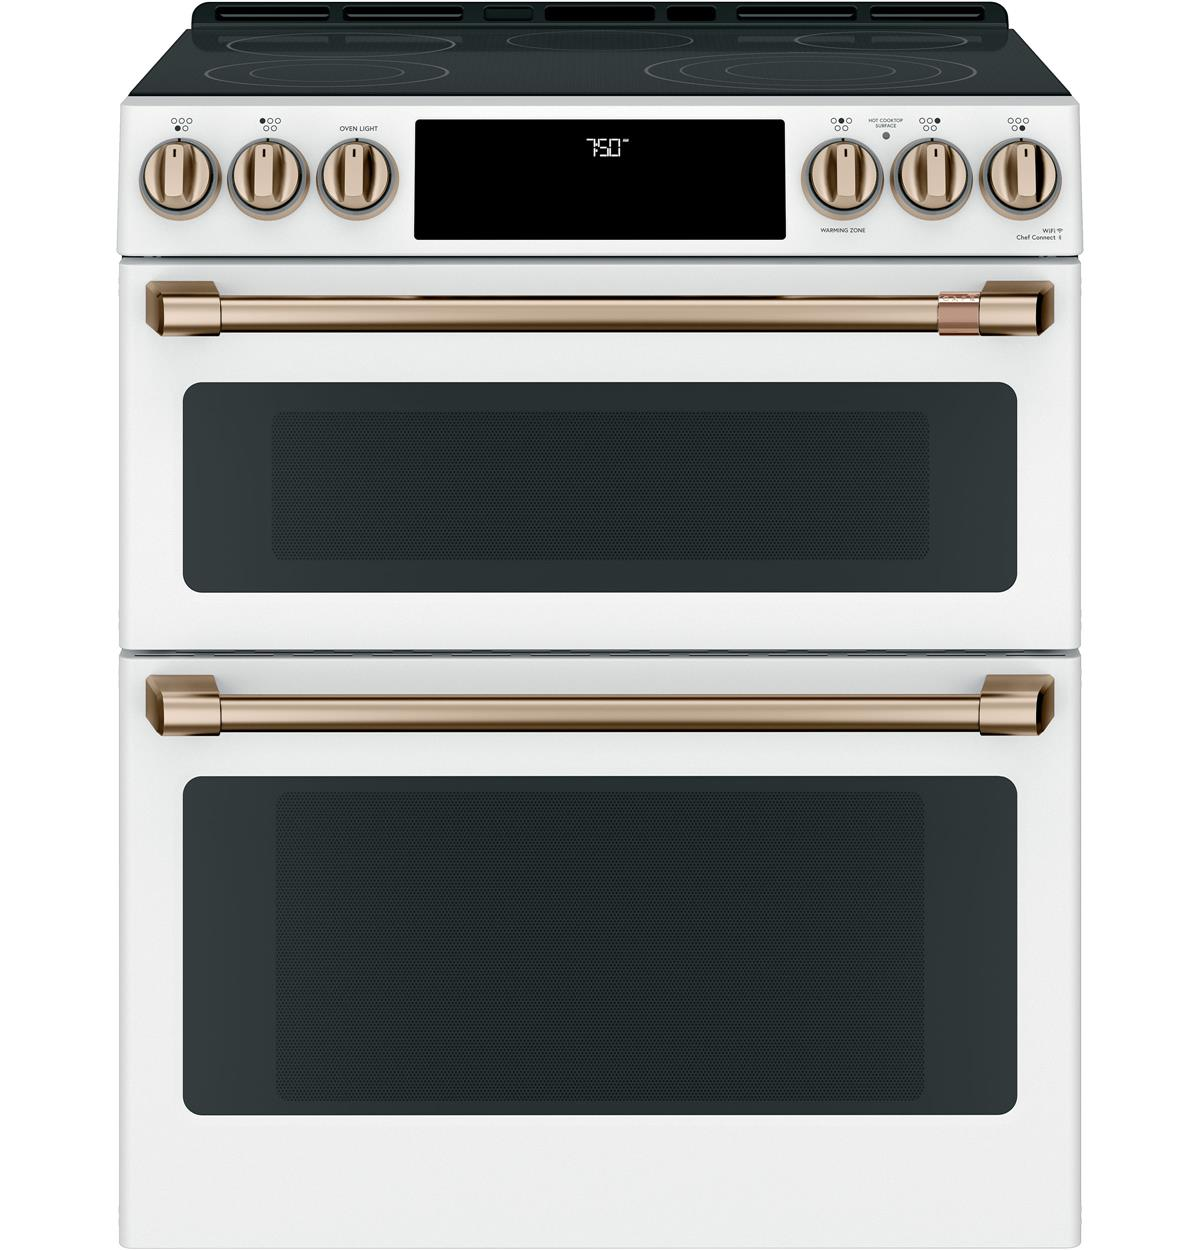 "Café™ 30"" Smart Slide-In, Front-Control, Radiant and Convection Double-Oven Range"